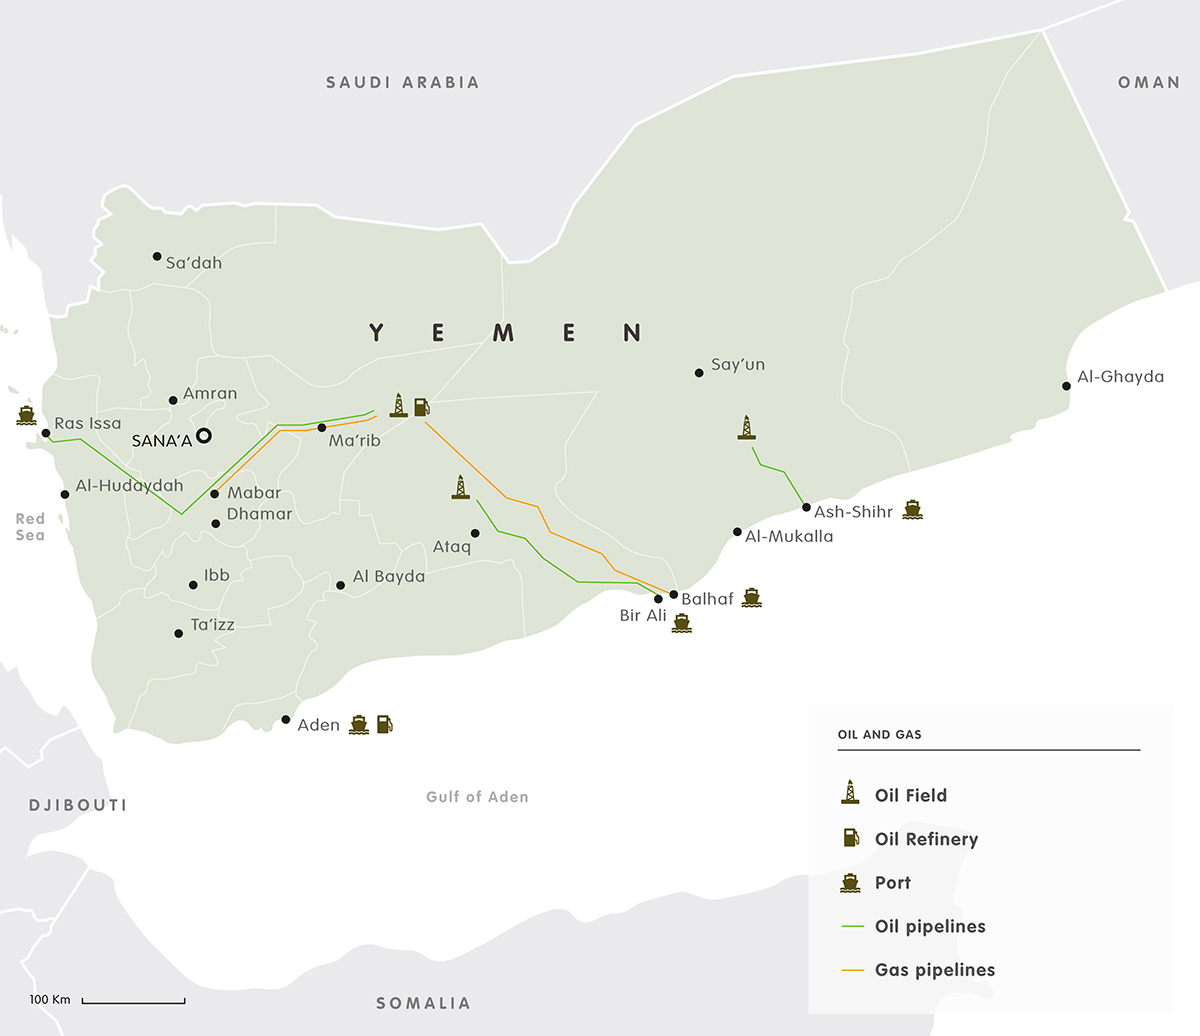 Oli and gas map Yemen 2017